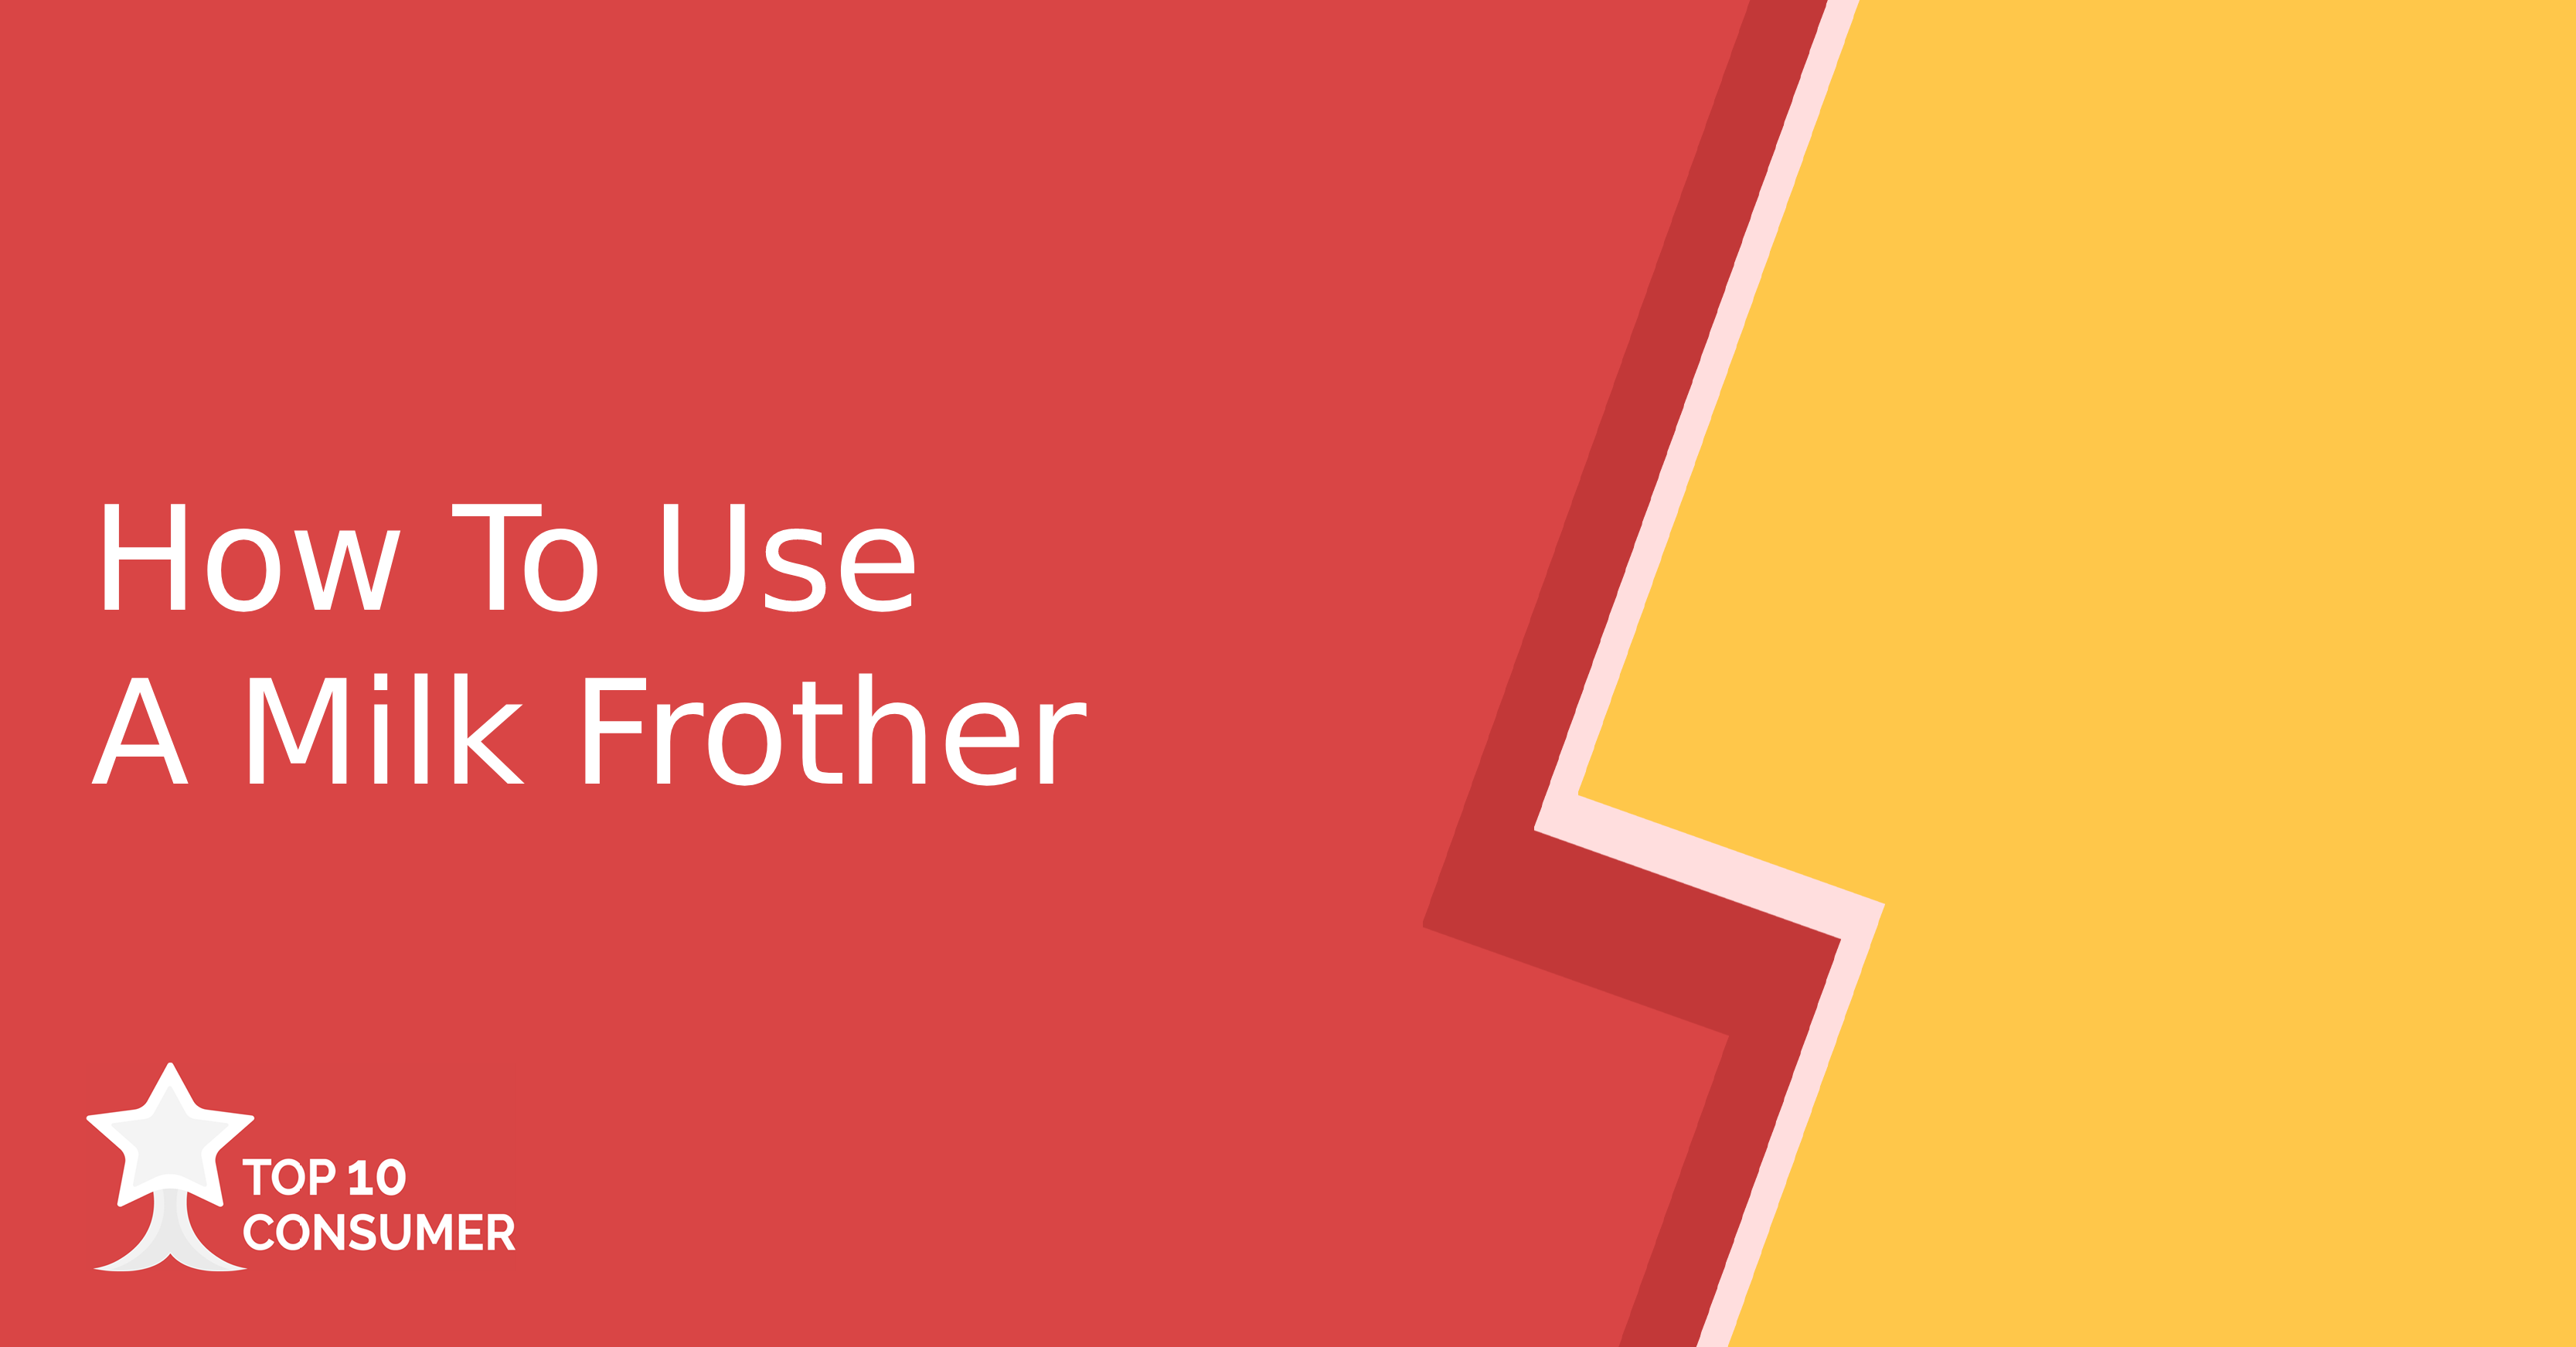 How To Use A Milk Frother